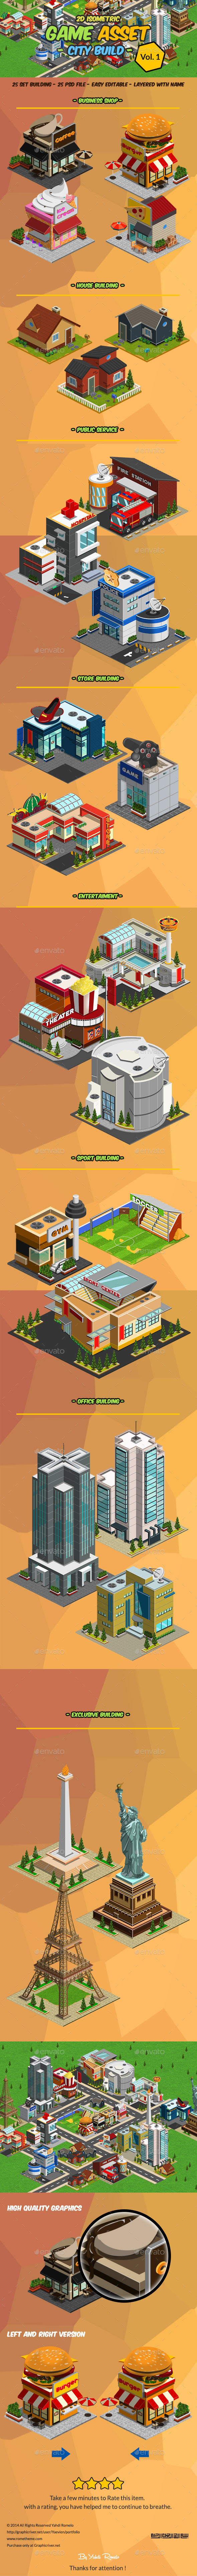 GraphicRiver 2D Isometric Game Asset City Build Vol 1 8924699